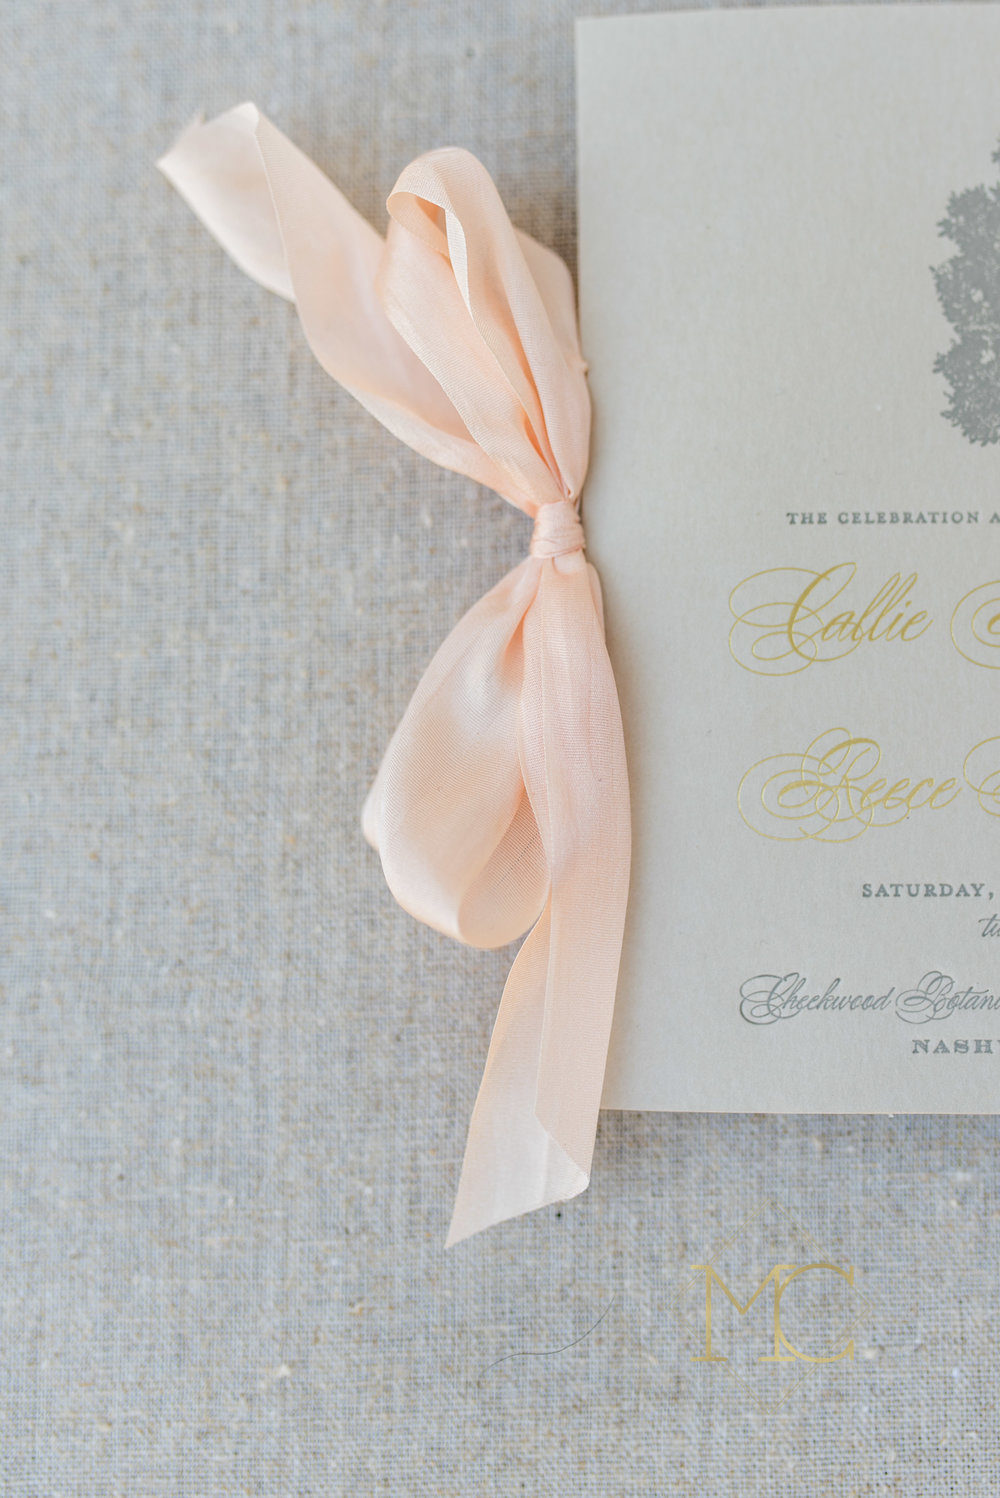 image of nashville stationary and graphic designer fine paper wedding invitations and cards